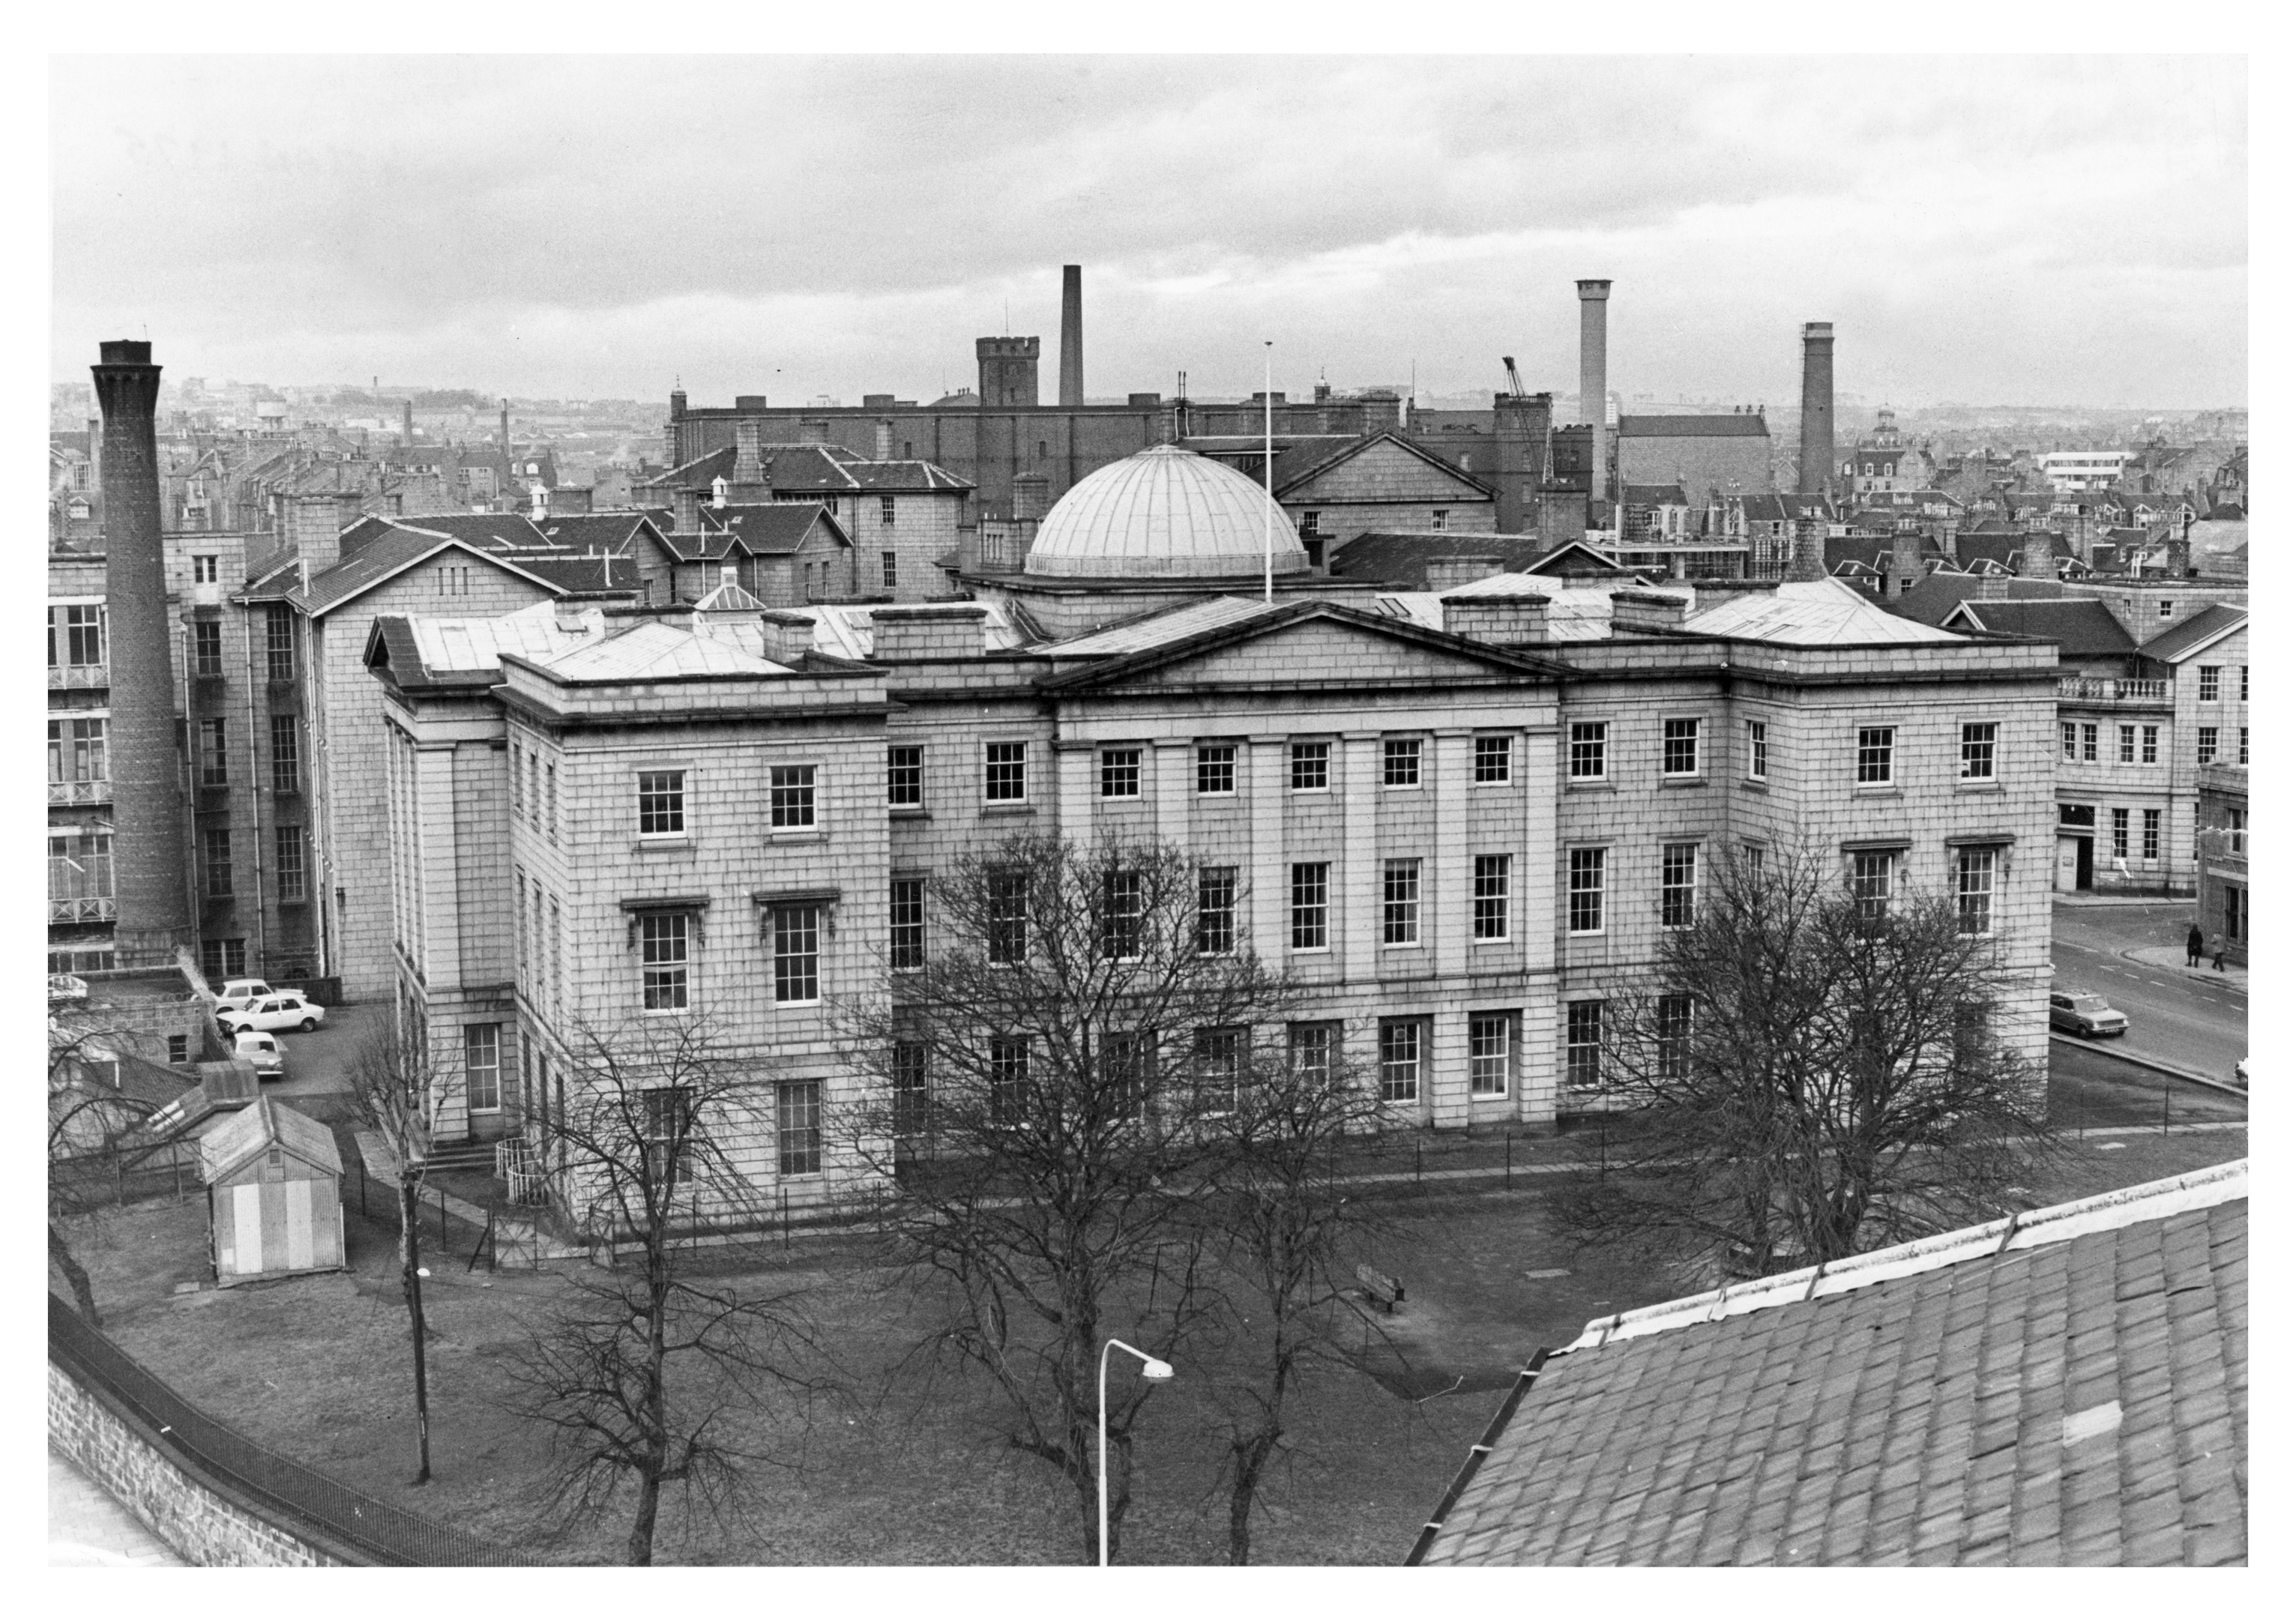 The impressive south front of Simpson's old infirmary building at Woolmanhill.